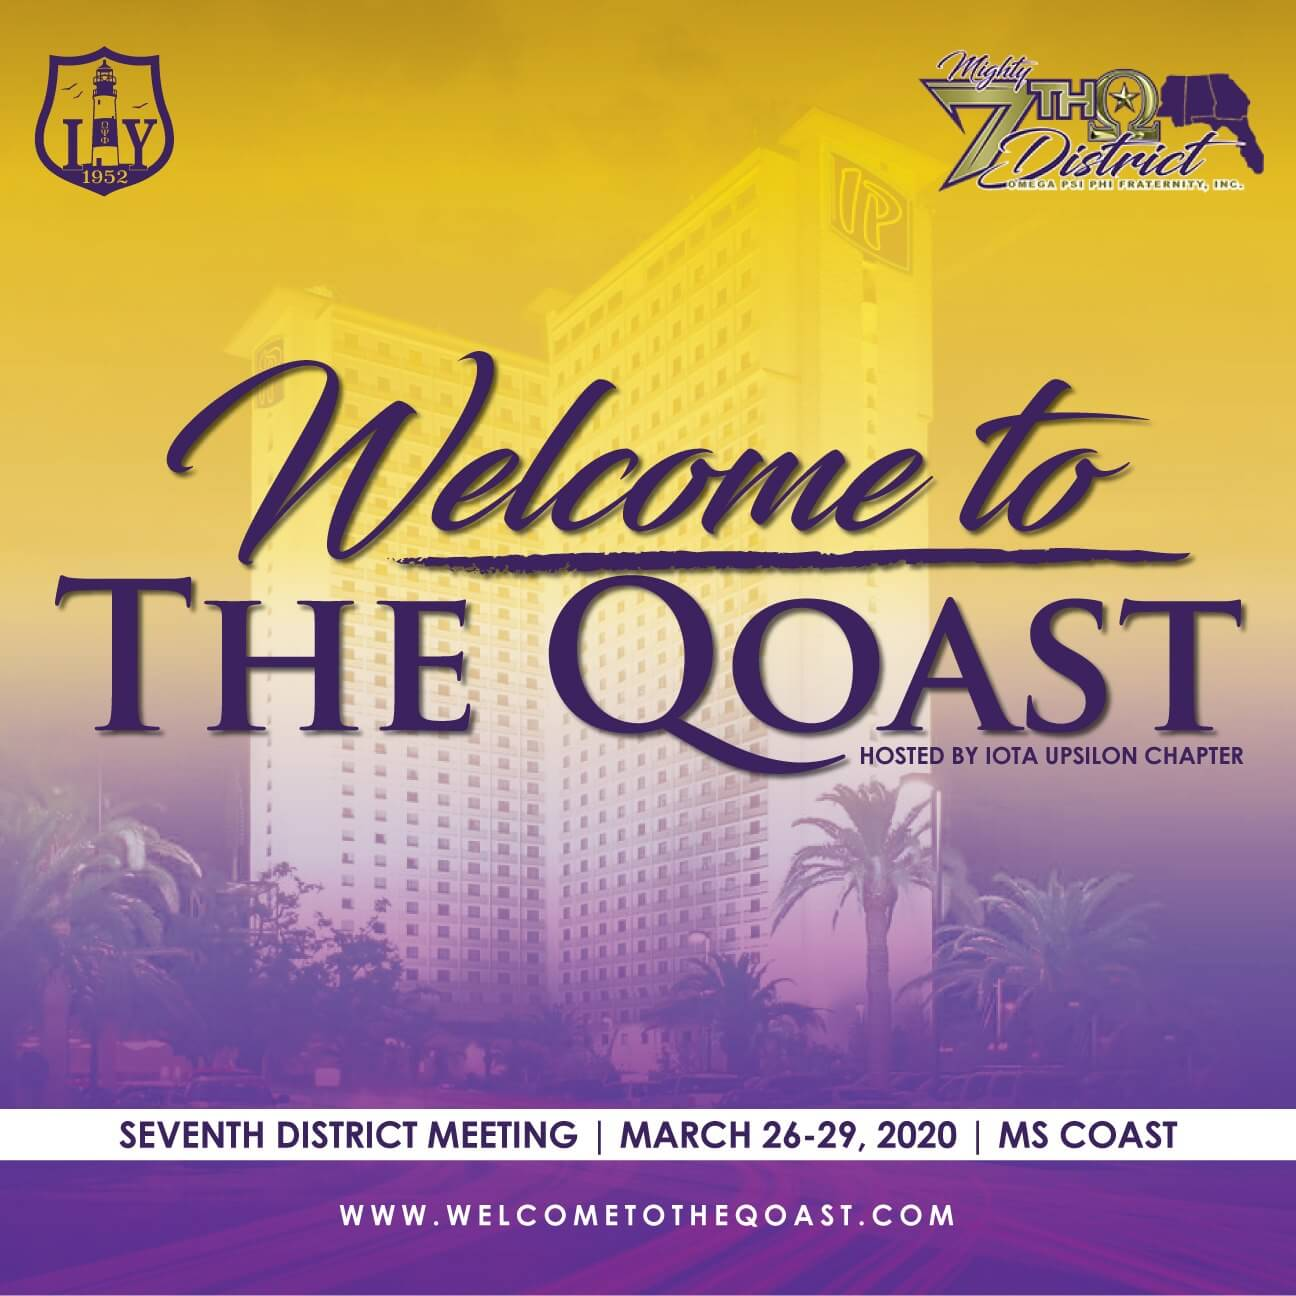 2020 Omega Psi Phi Seventh District Meeting